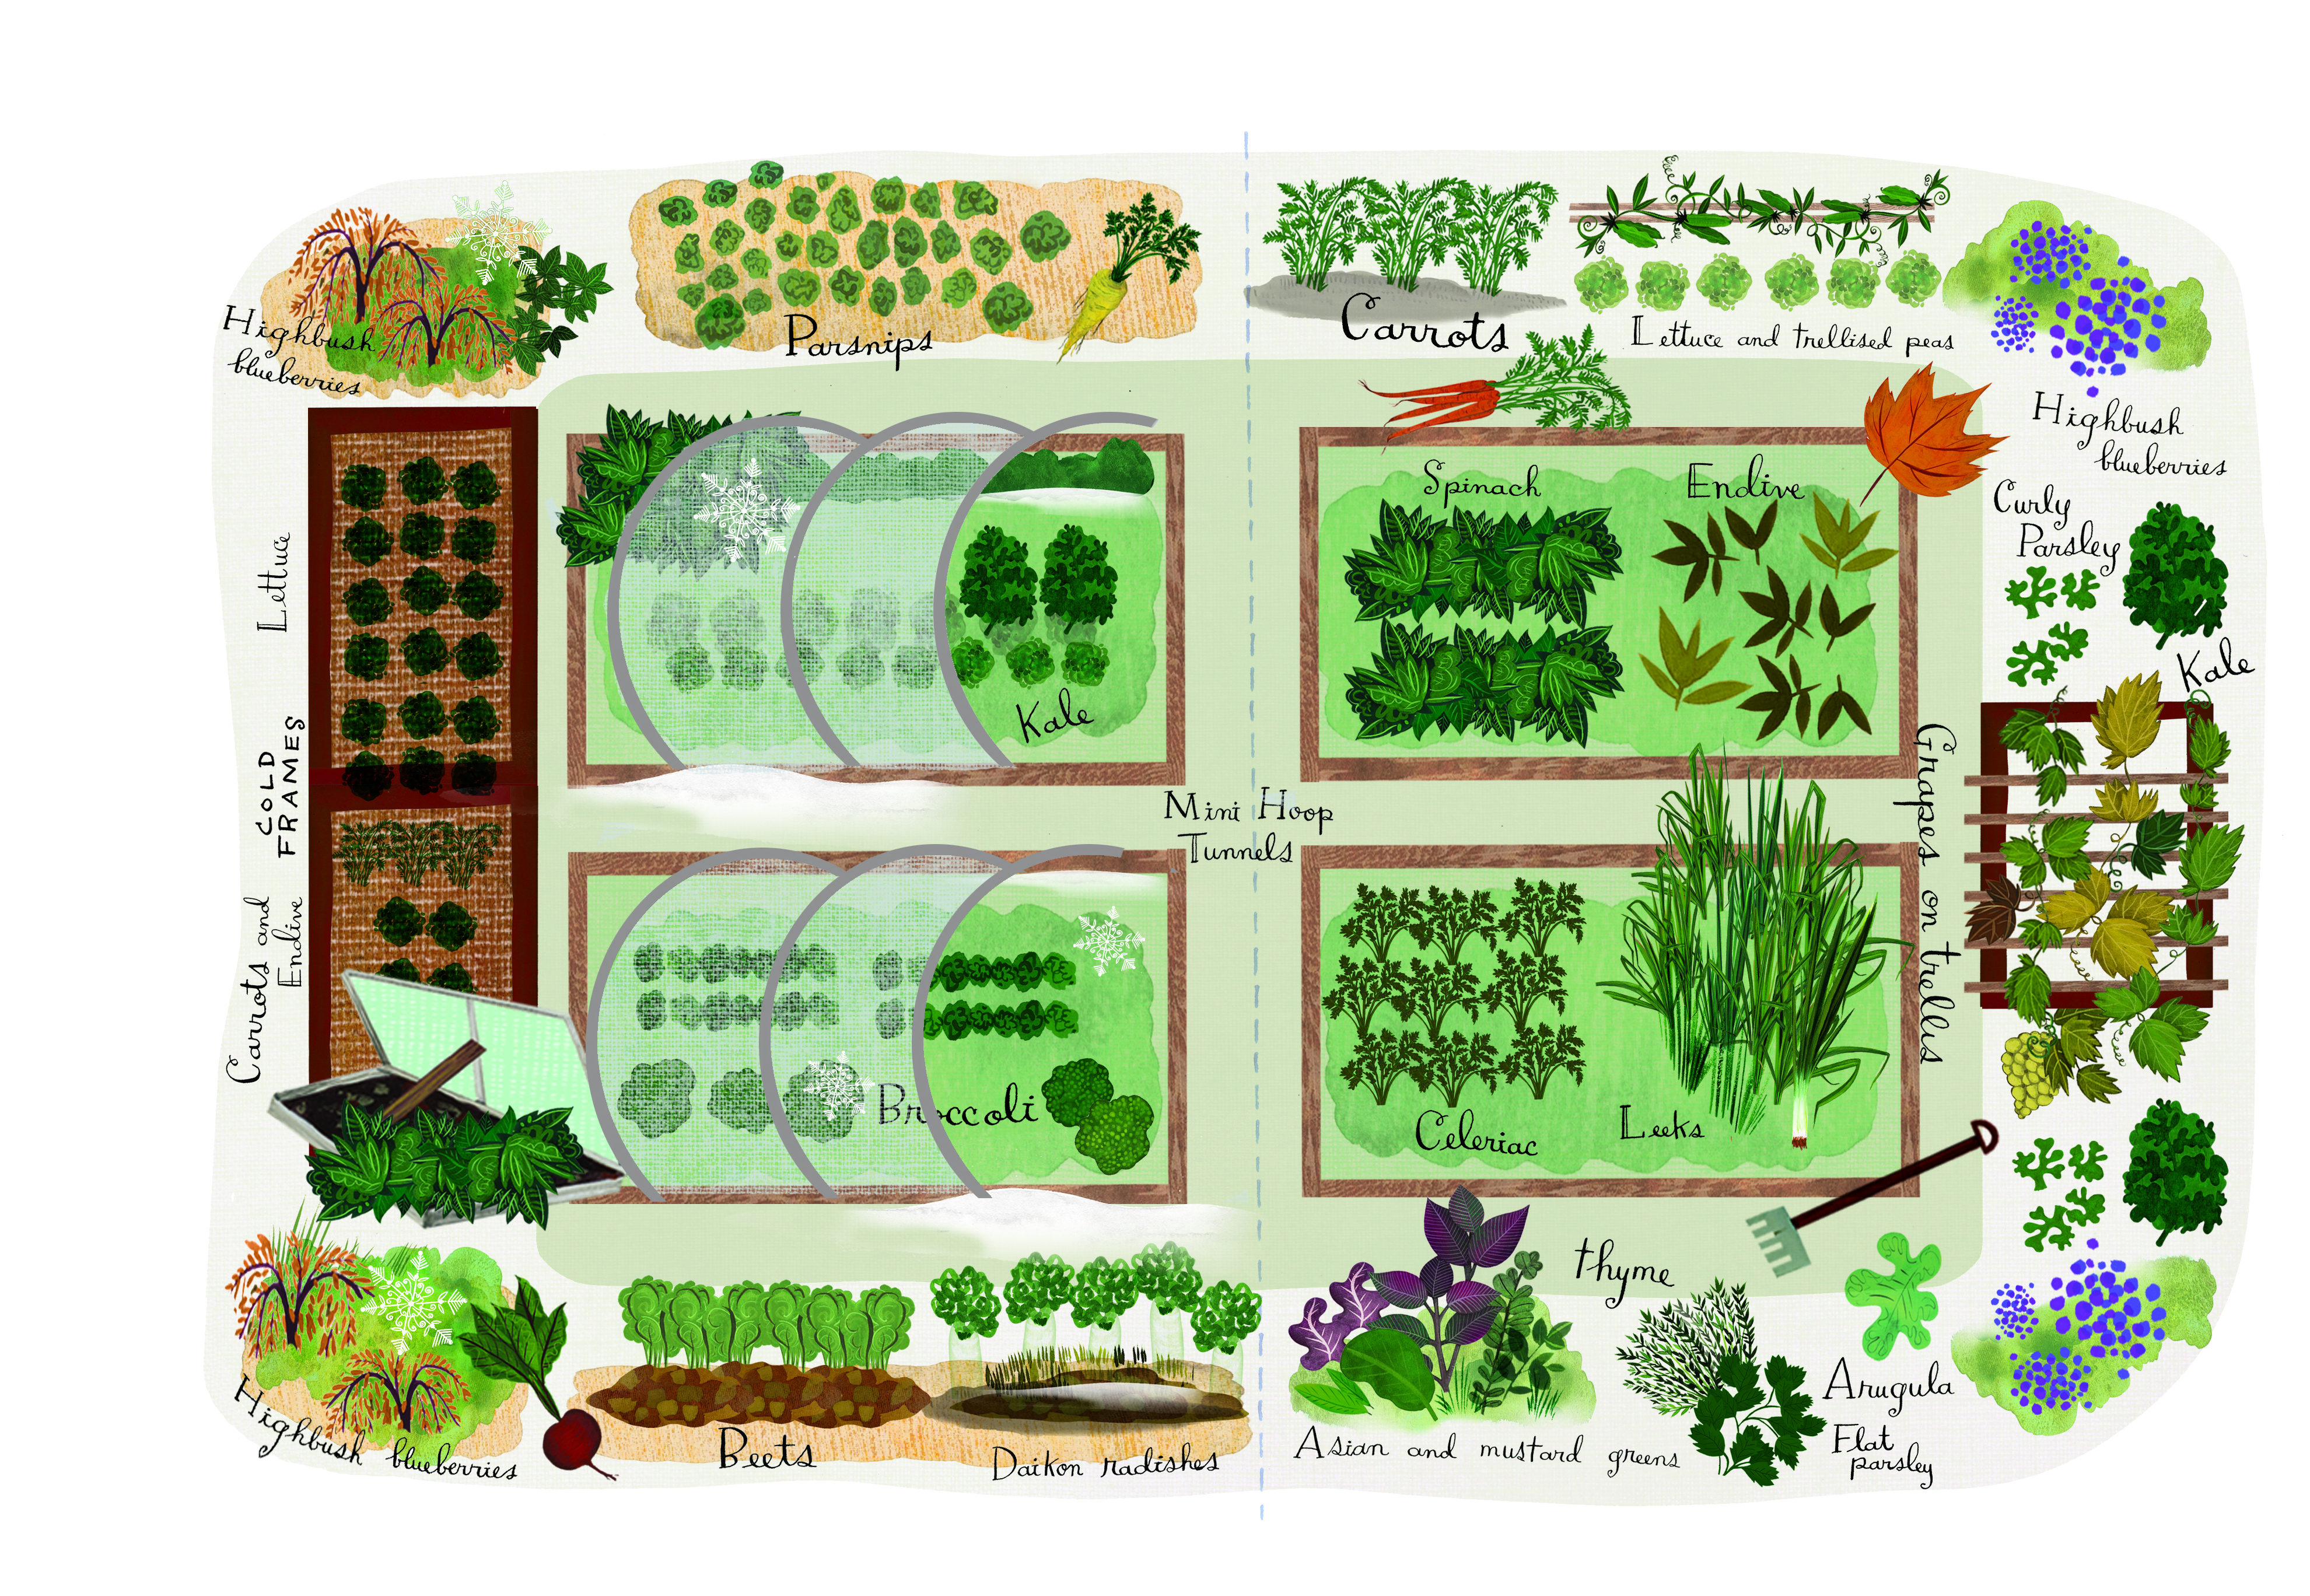 Vegetable Garden Plans, Designs + Layout Ideas | Family Food ... on food salads, food herbs, food pests, office plans, food forest plans, food winter, xeriscape plans, playground plans, food business plans, food weather, food trees, food lesson plans, backyard plans, food blogging, permaculture plans, food gardening, food soup,